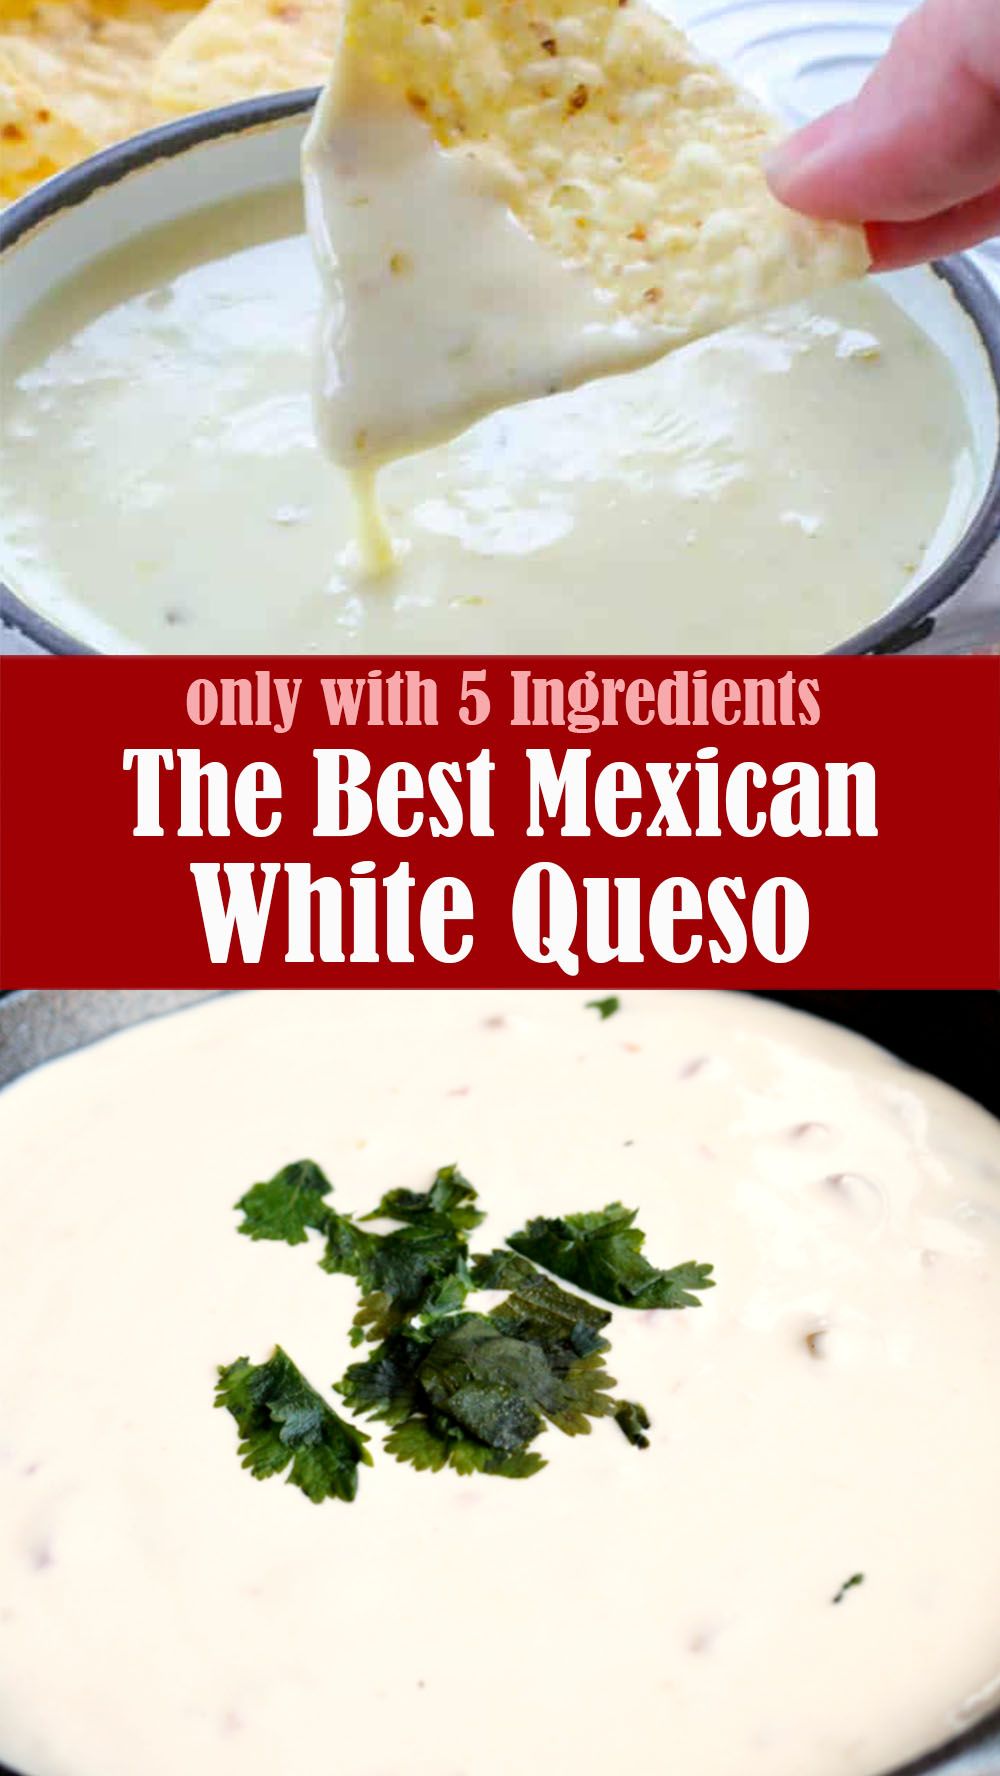 The Best Mexican White Queso